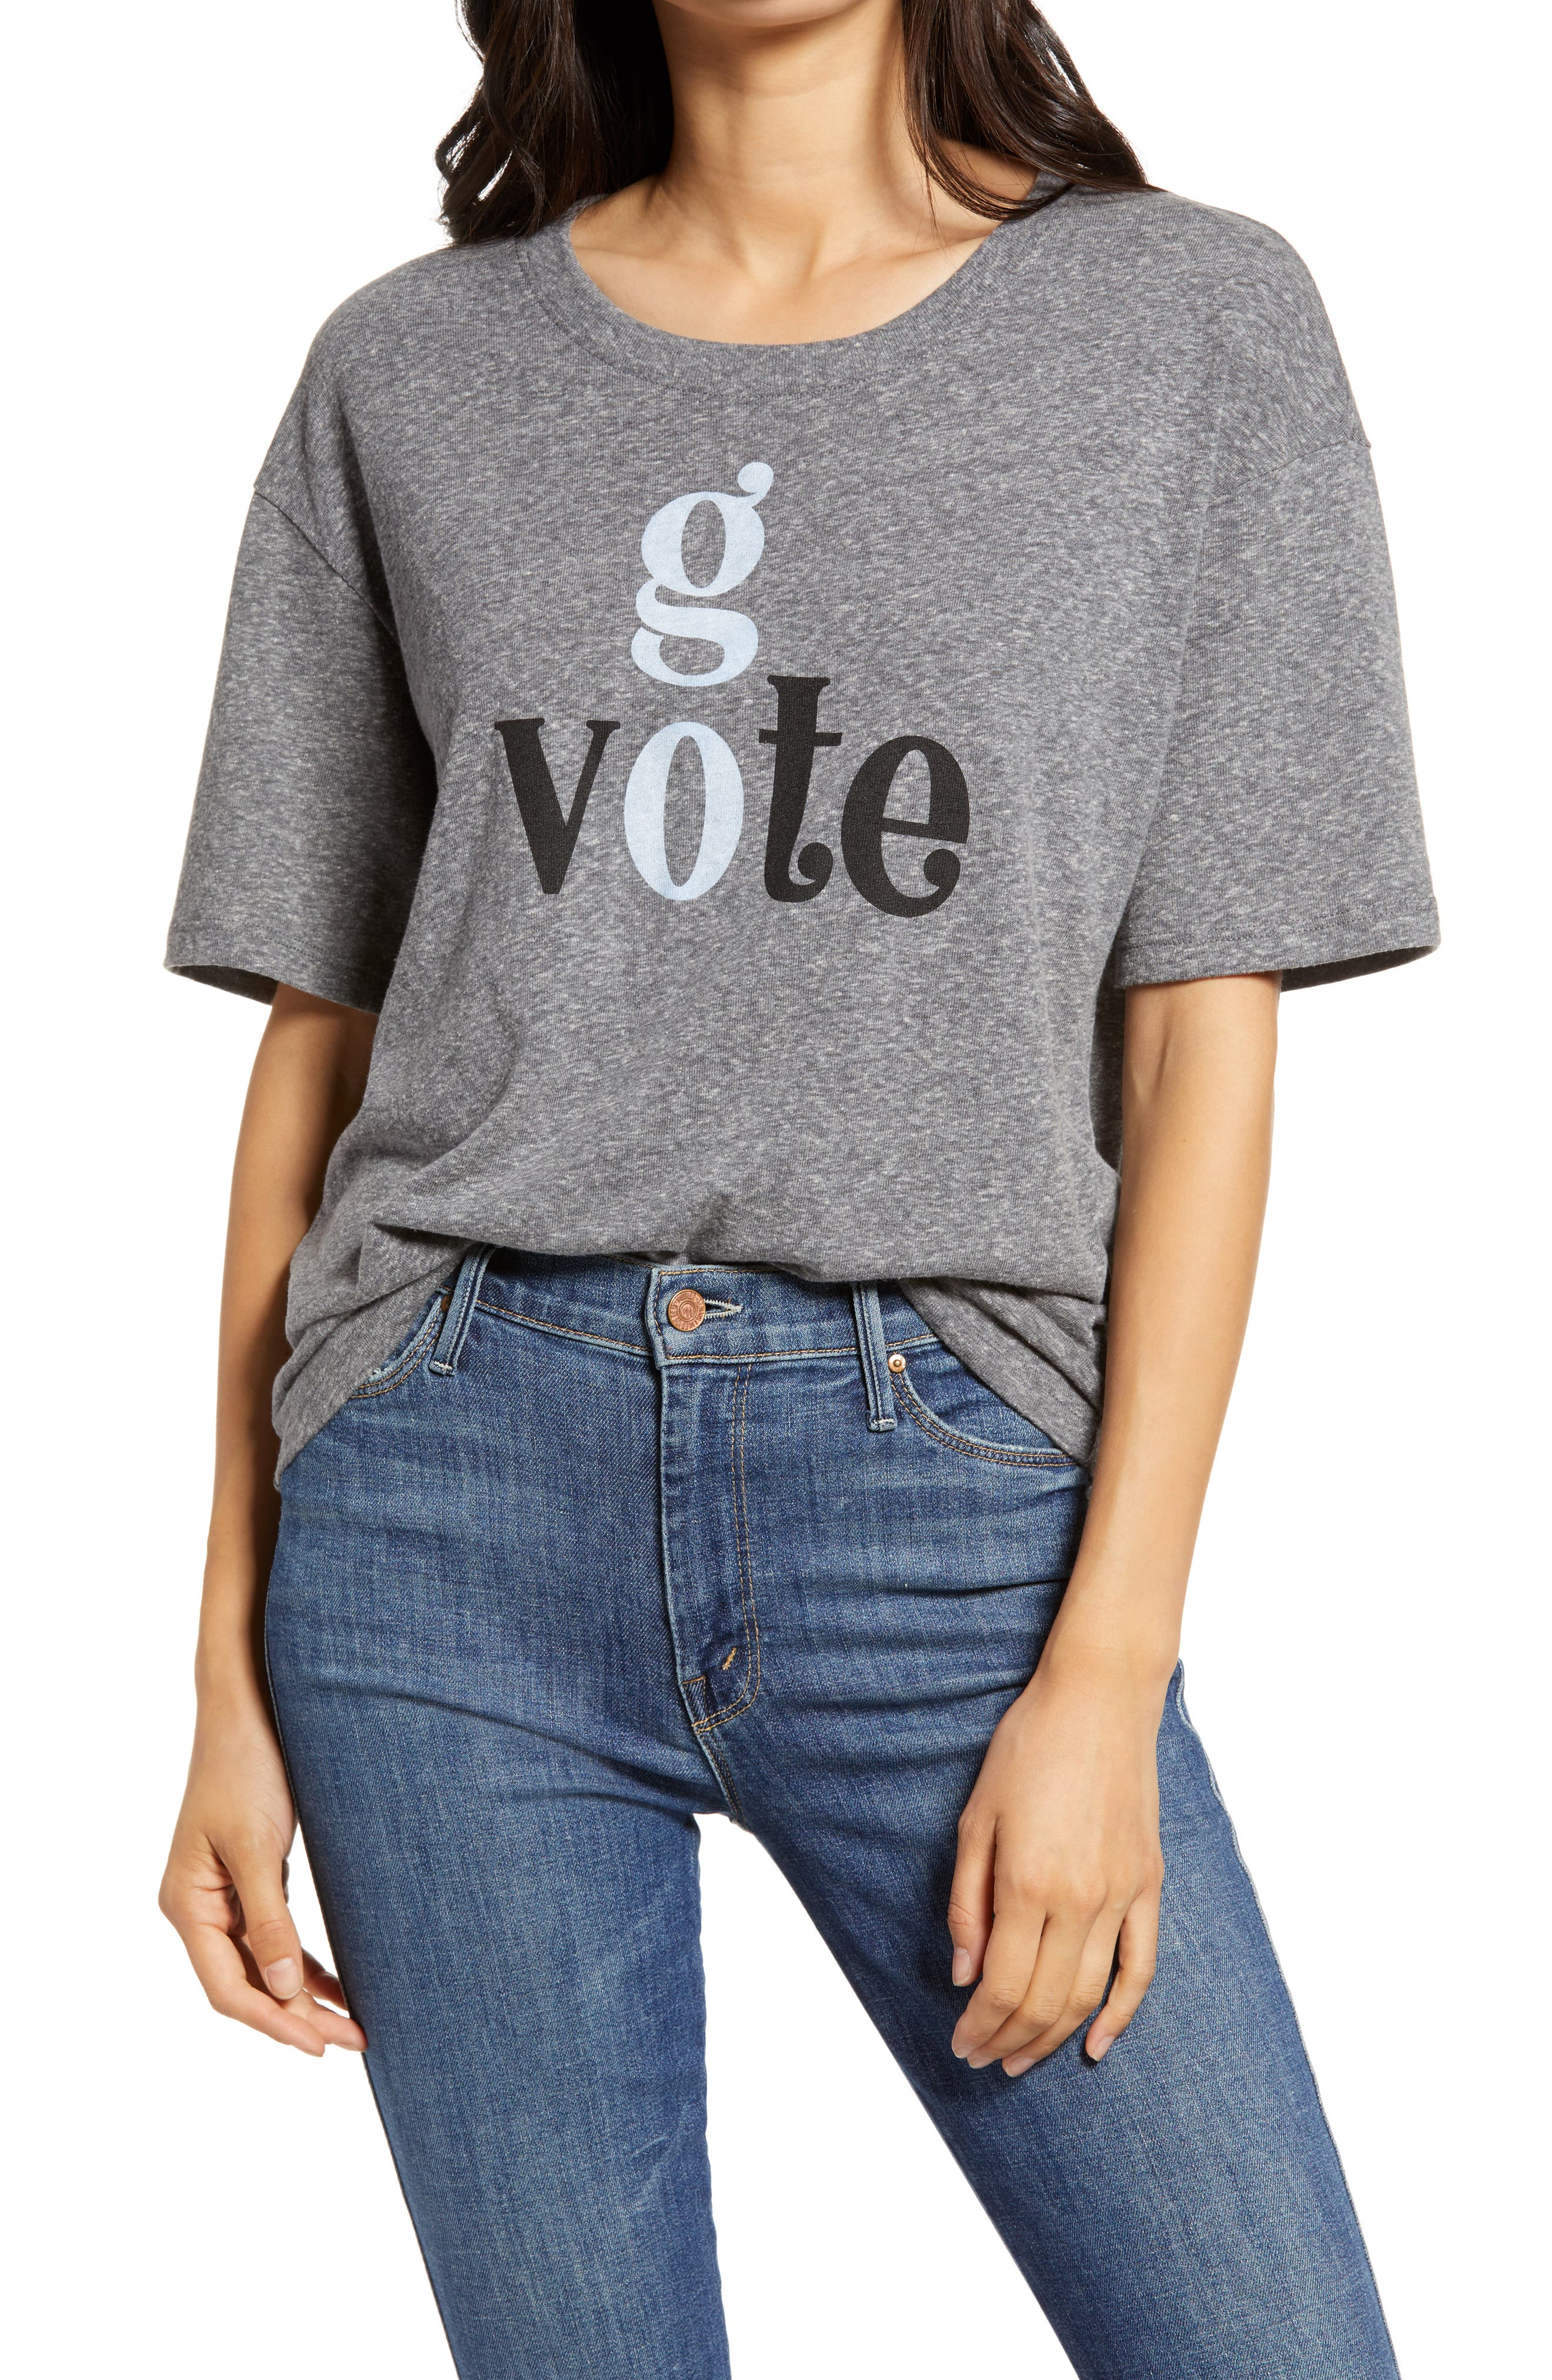 Make Susan B Anthony proud and cast your ballot in this soft heathered tee that encourages you to make your voice heard on November 3rd. When you buy Treasure & Bond, Nordstrom will donate 2.5% of net sales to organizations that work to empower youth. Style Name: Treasure & Bond Vote Collection Go Vote Graphic Tee. Style Number: 6094379. Available in stores.